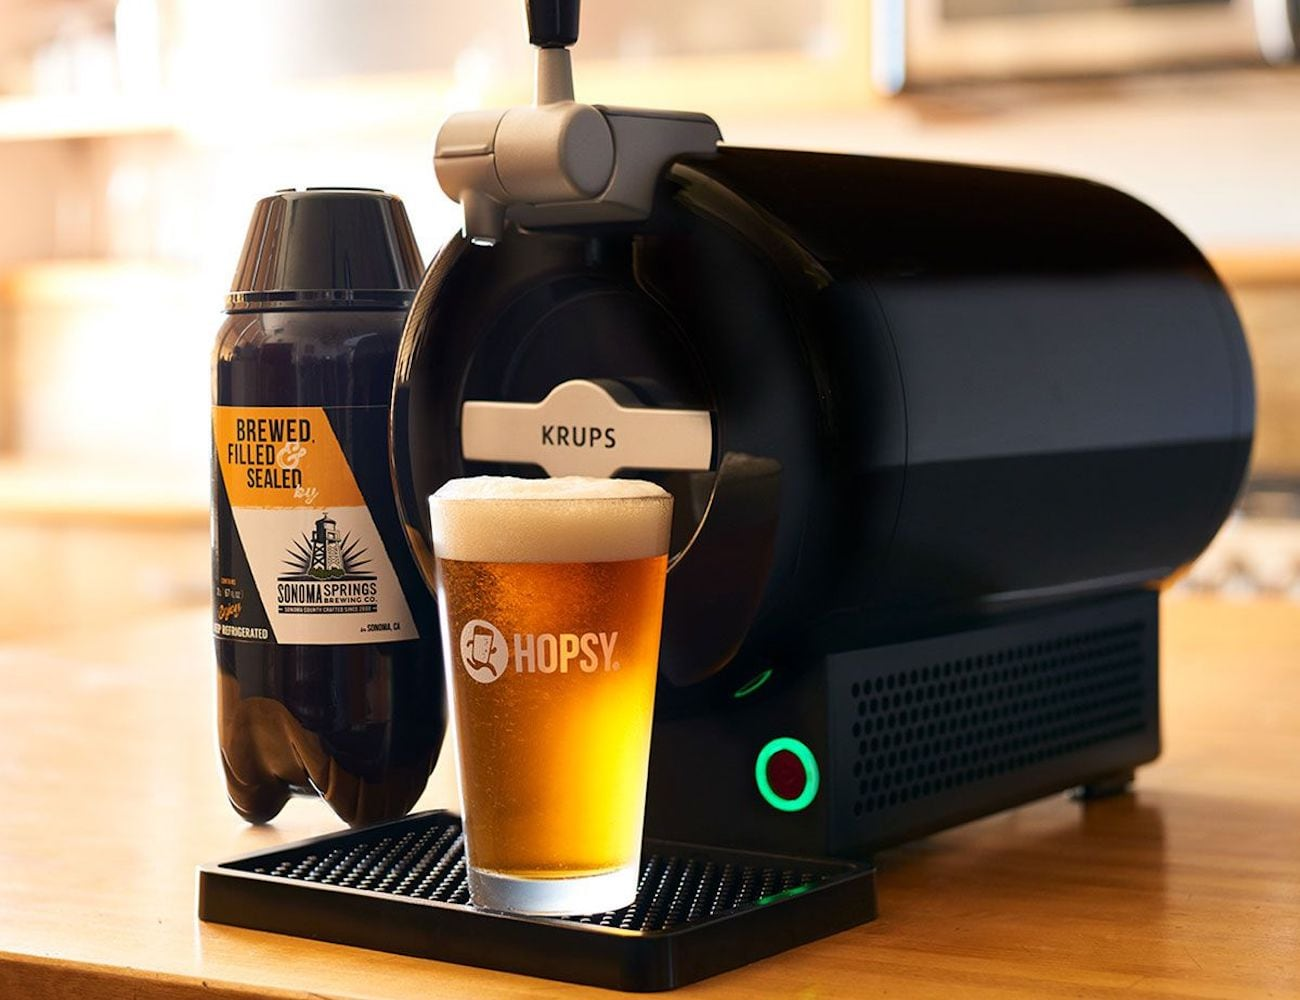 Hopsy SUB Home Tap Countertop Draft System brings the bar experience to your dining room